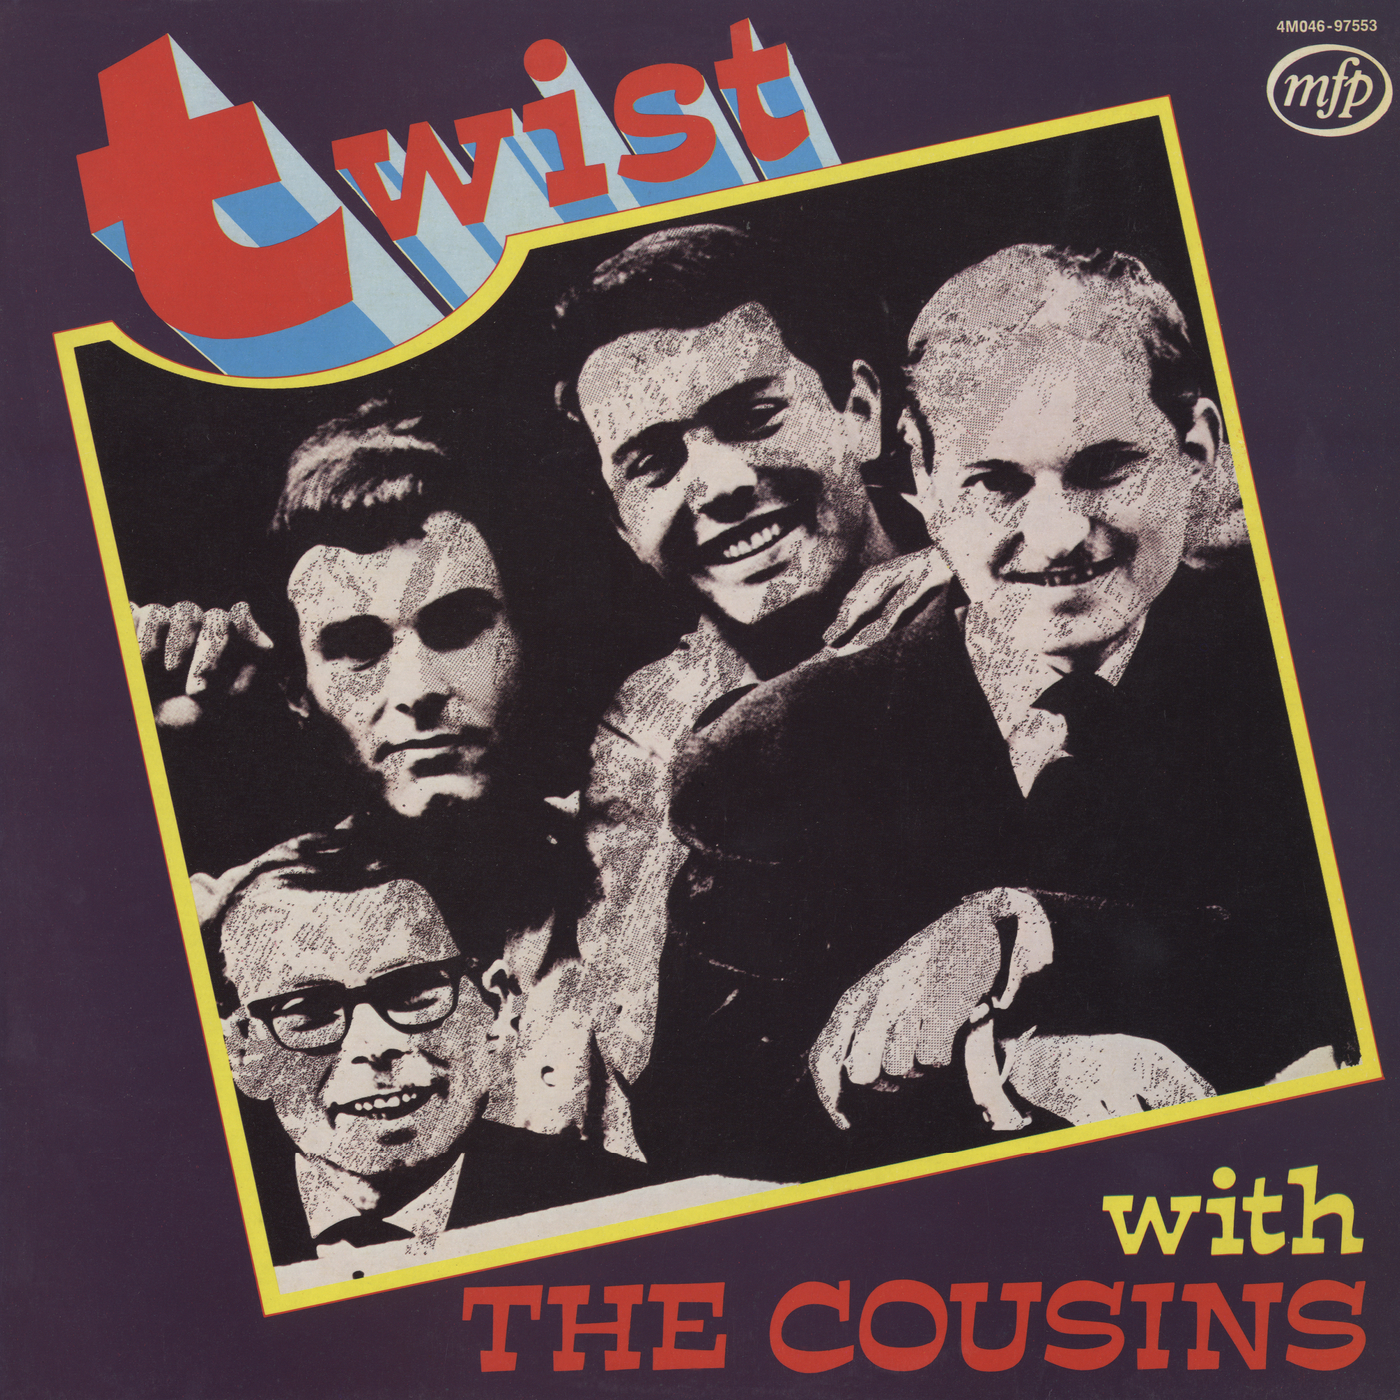 Let's Twist With The Cousins - The Cousins